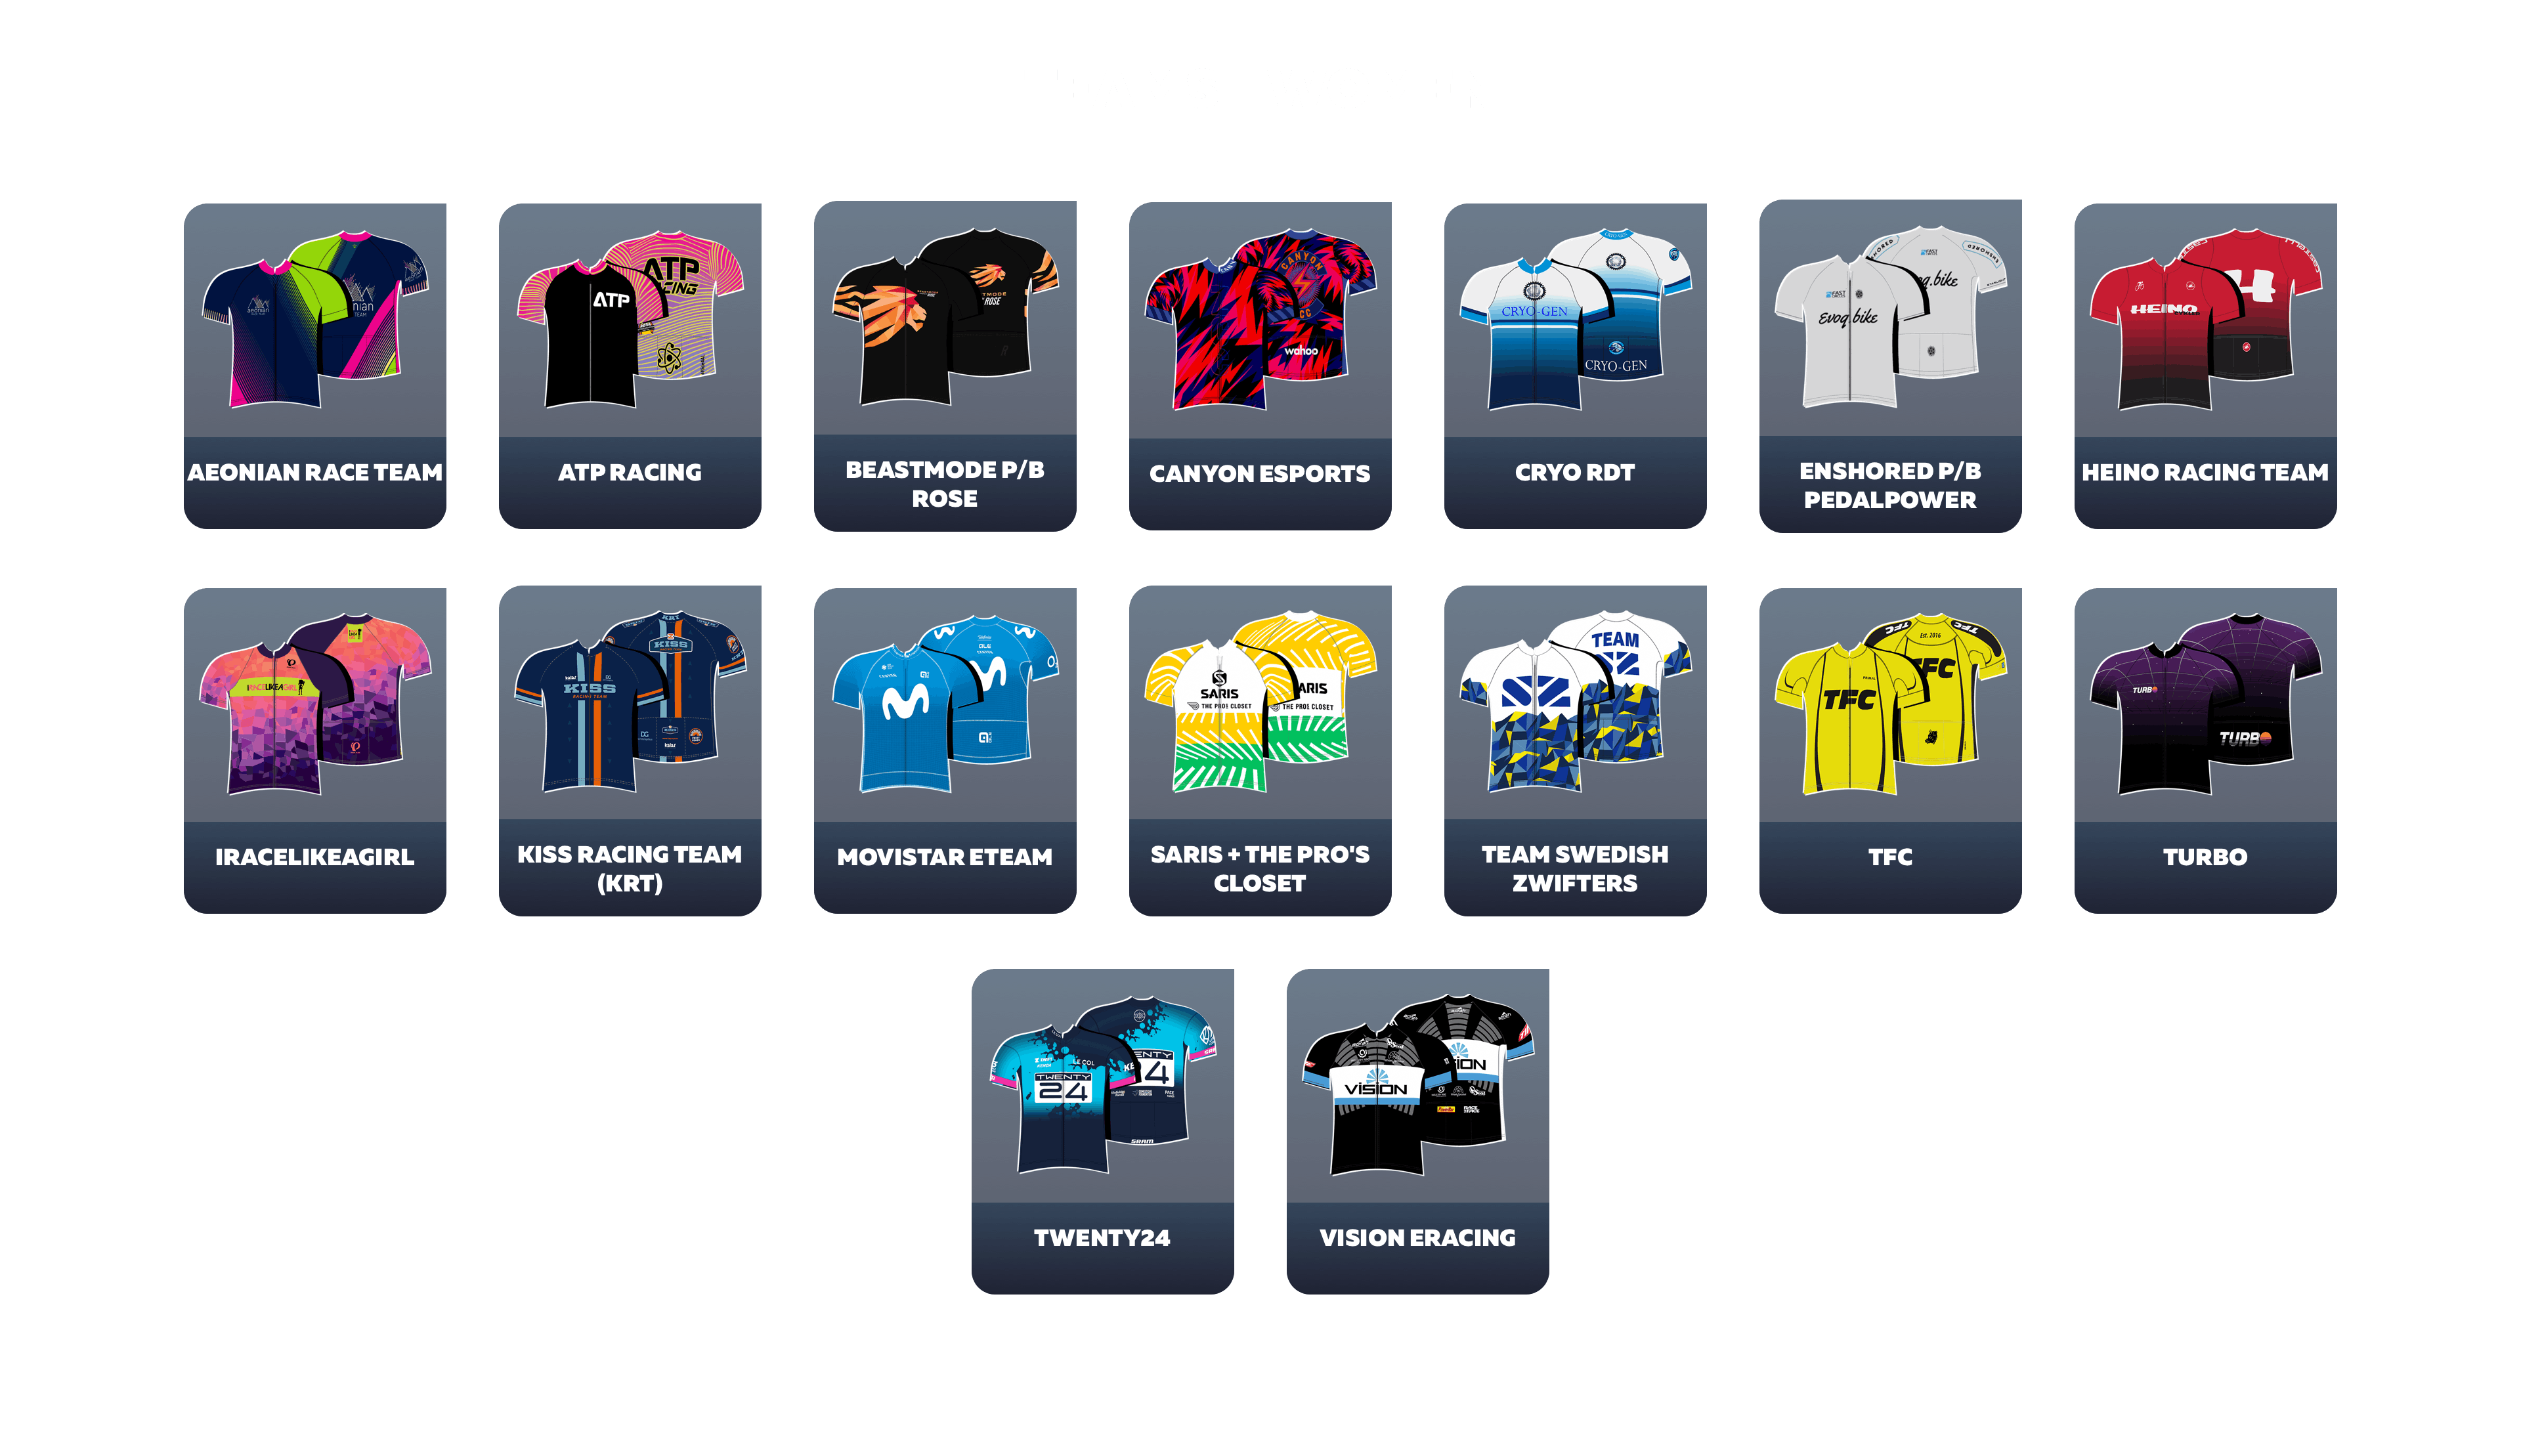 Women's Teams